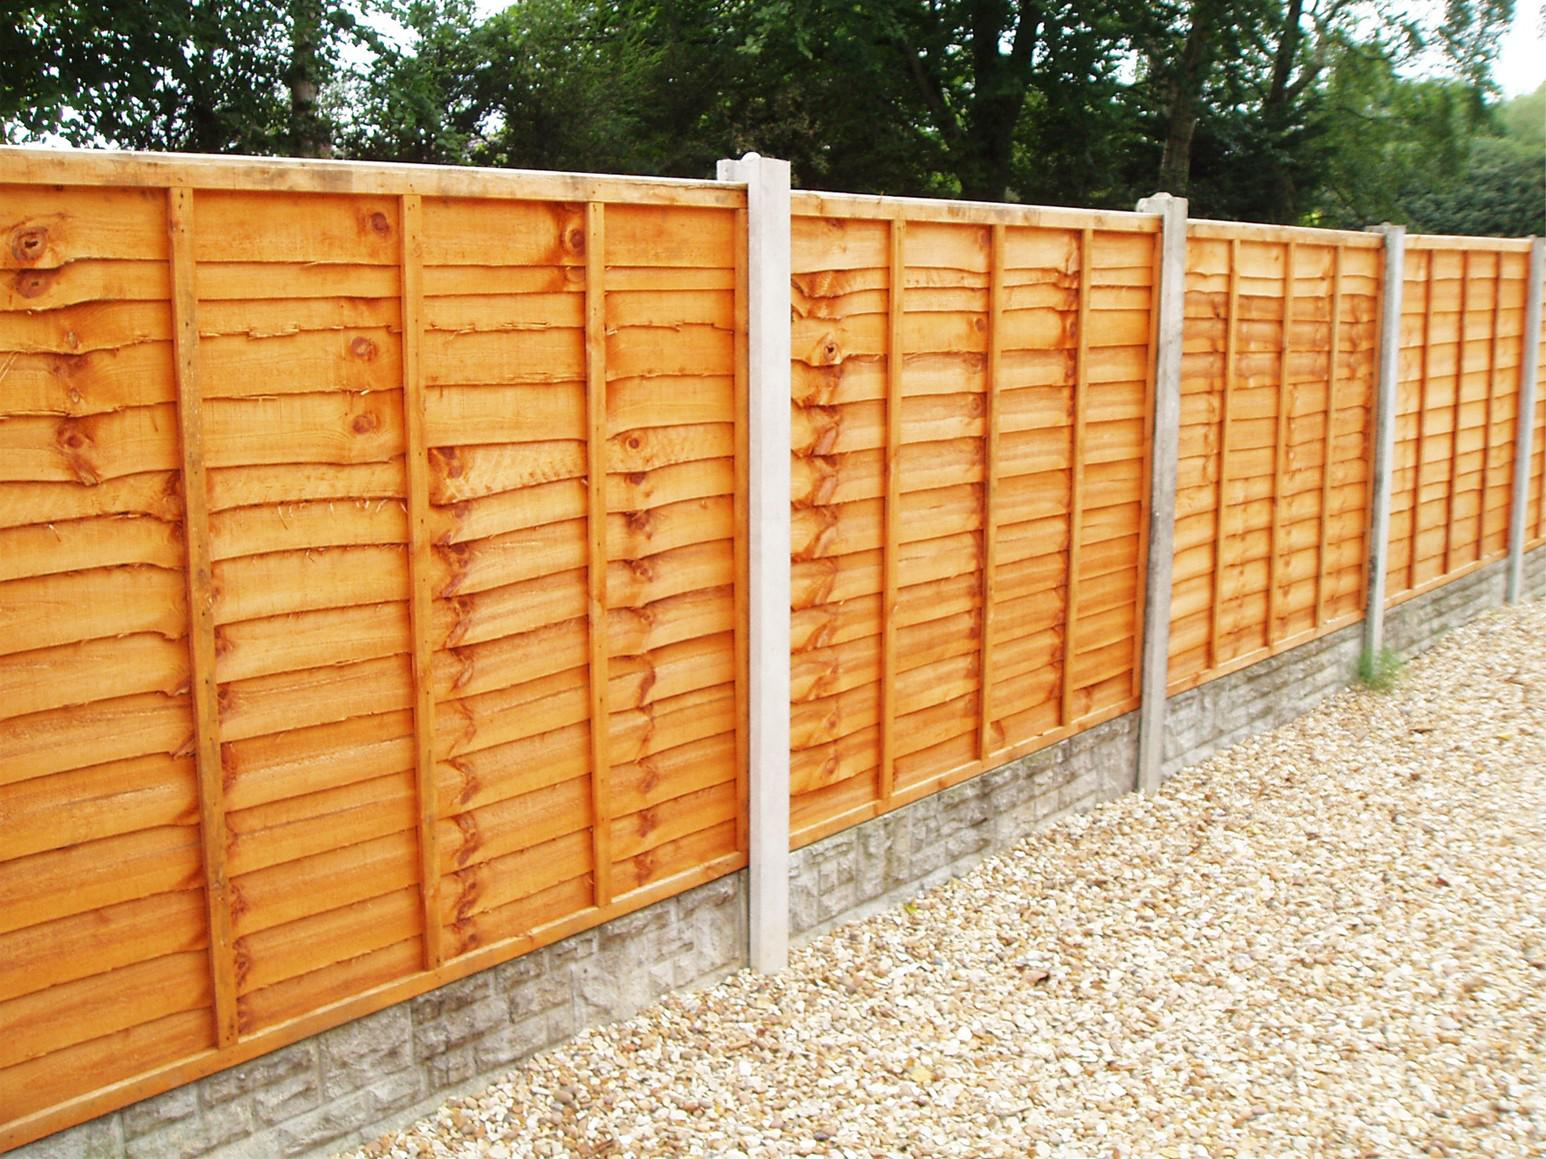 Why There Have Been High Demands For Brushwood Fence Panels